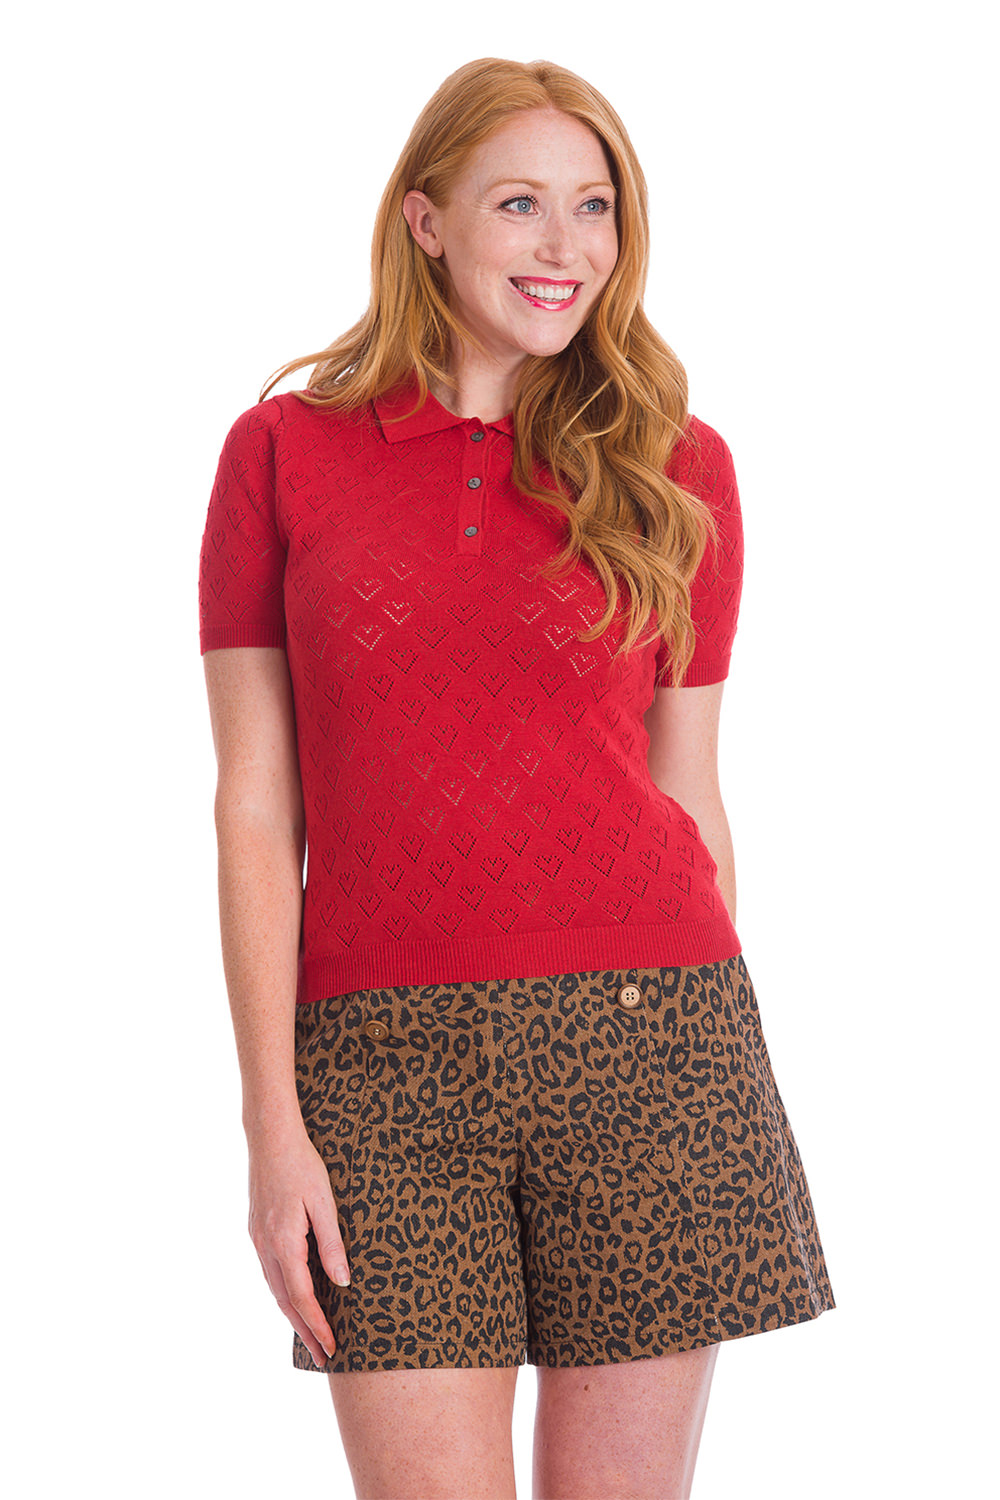 Banned 50s Smart Love Hearts Knit Dark Red Top